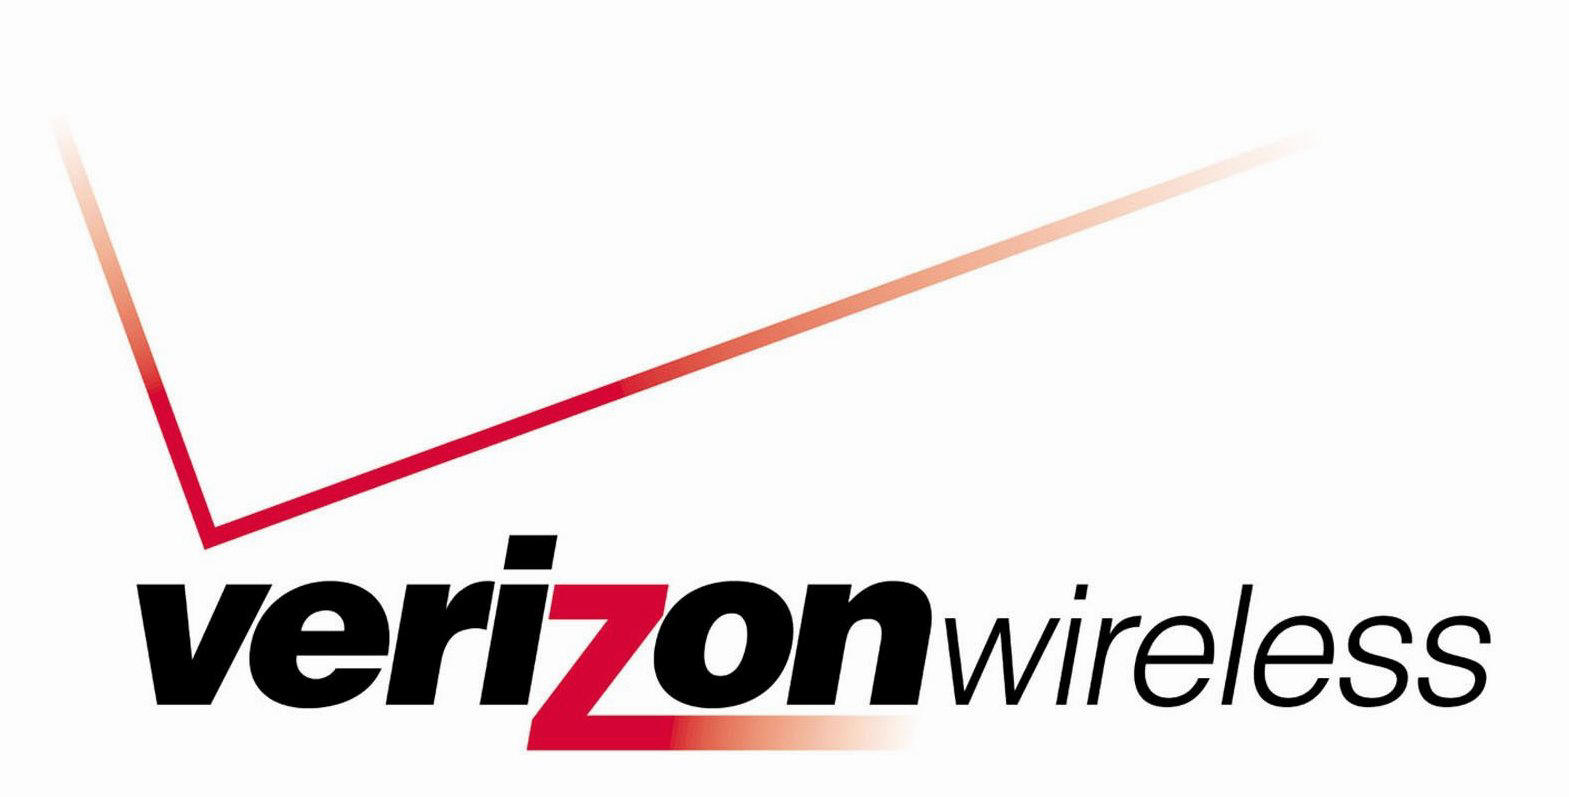 verizon wiress net worth